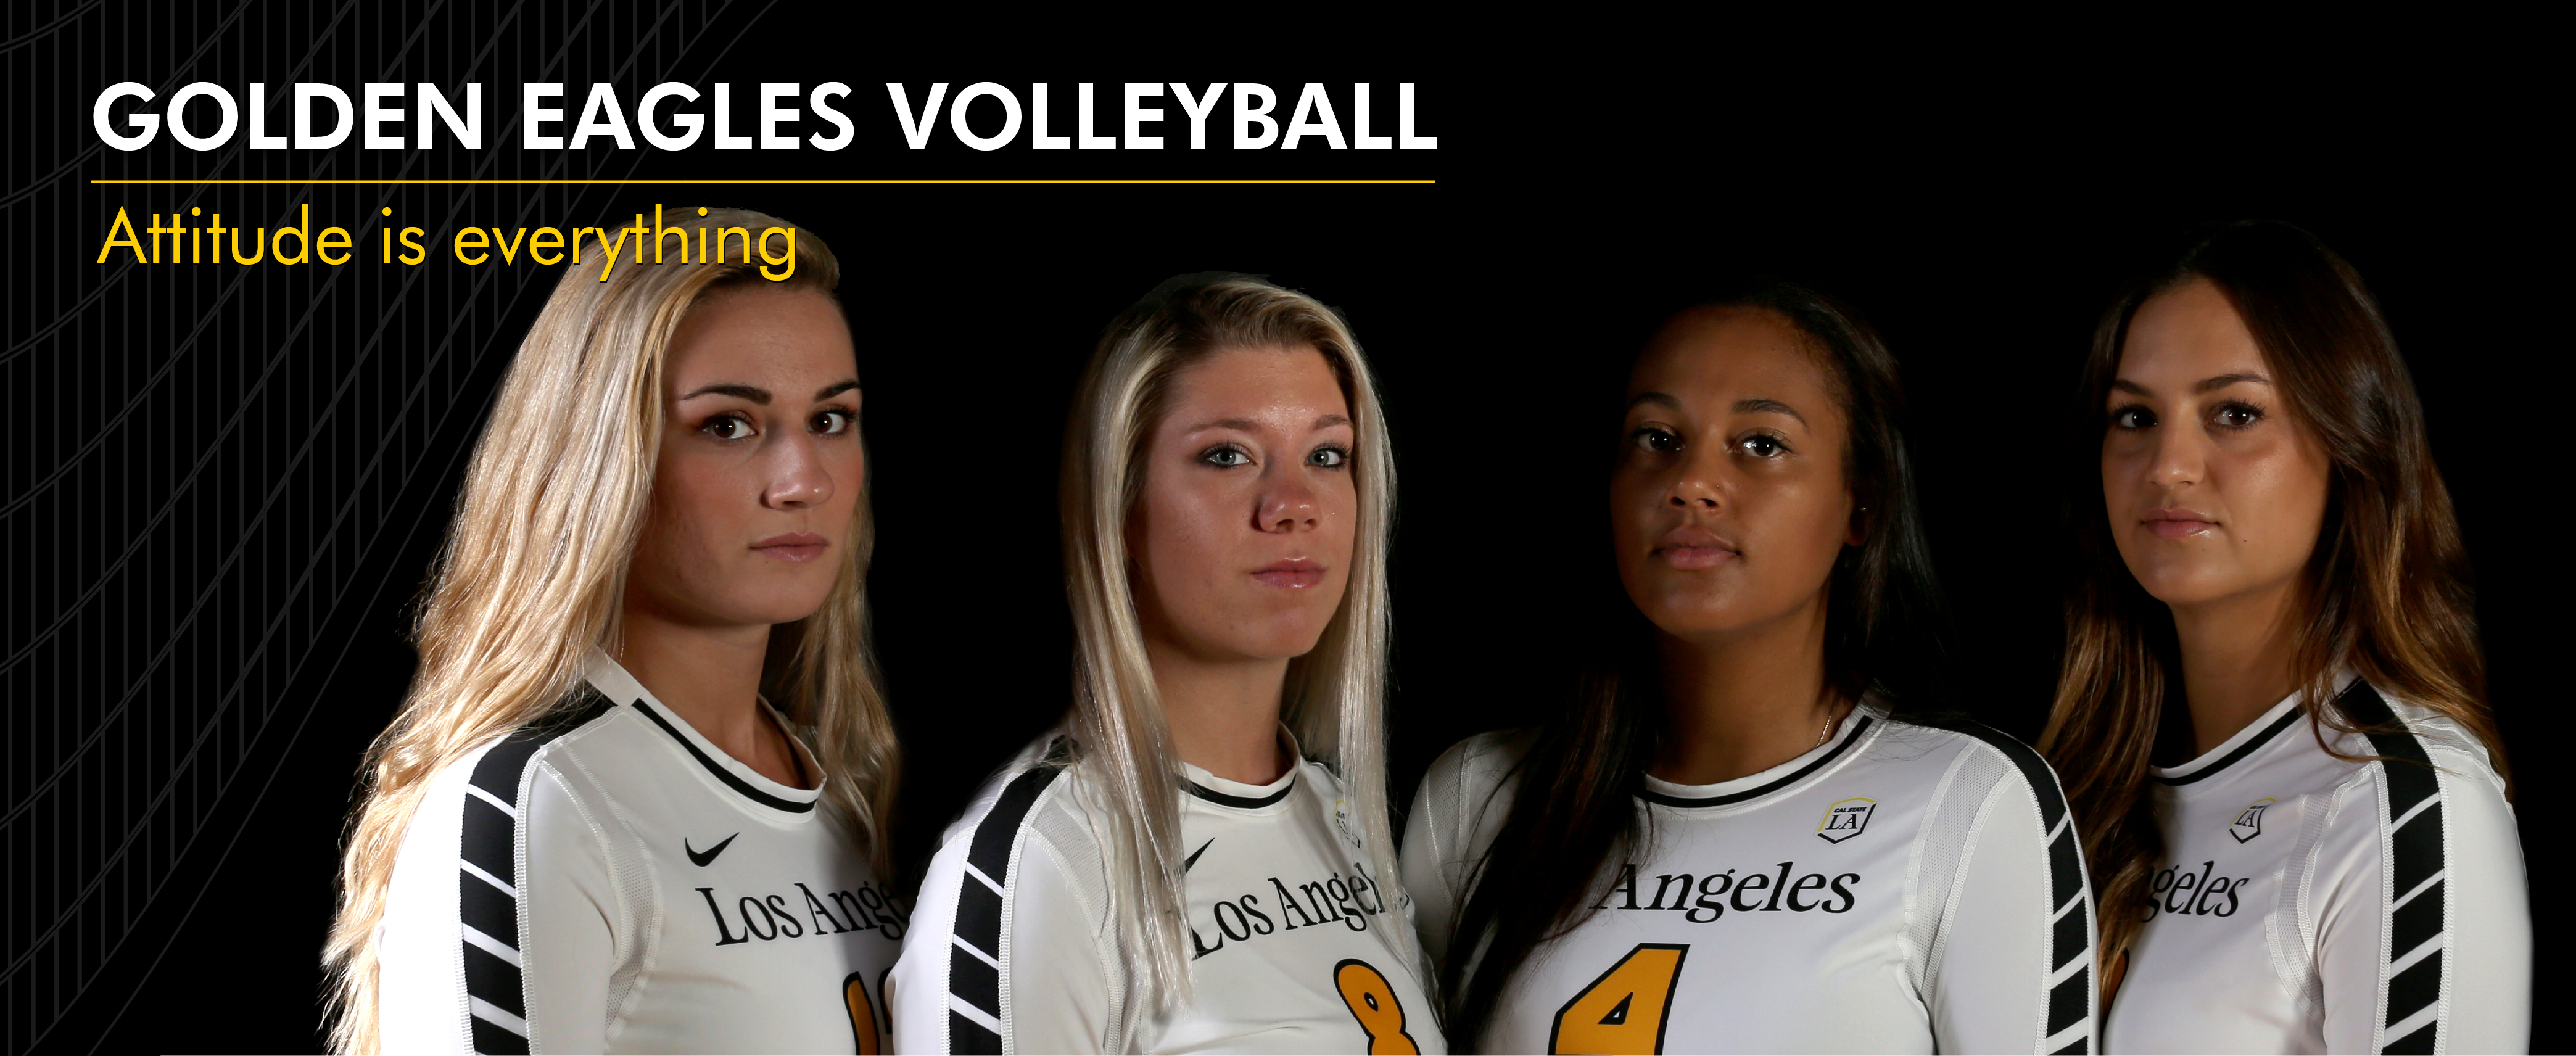 Golden Eagles Volleyball is back